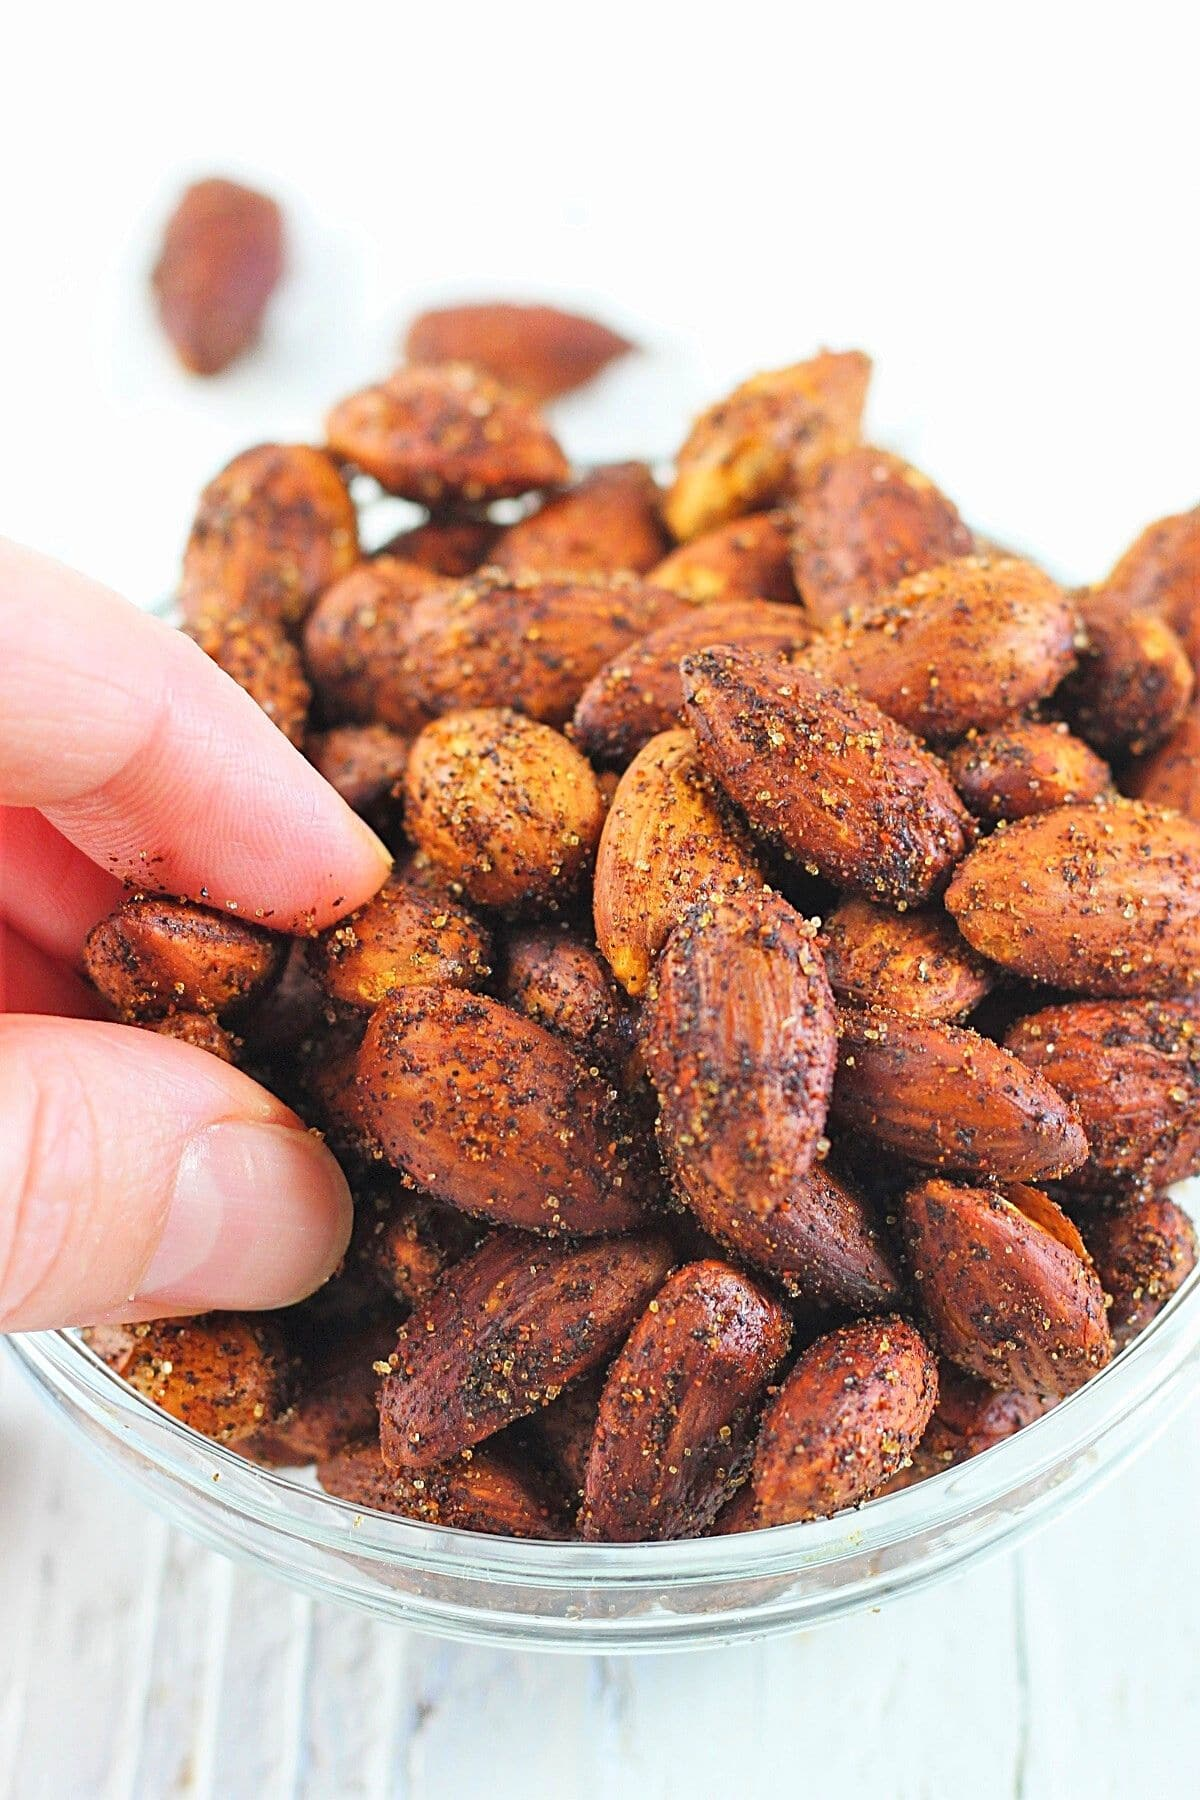 hand reaching into a bowl of smoky roasted almonds